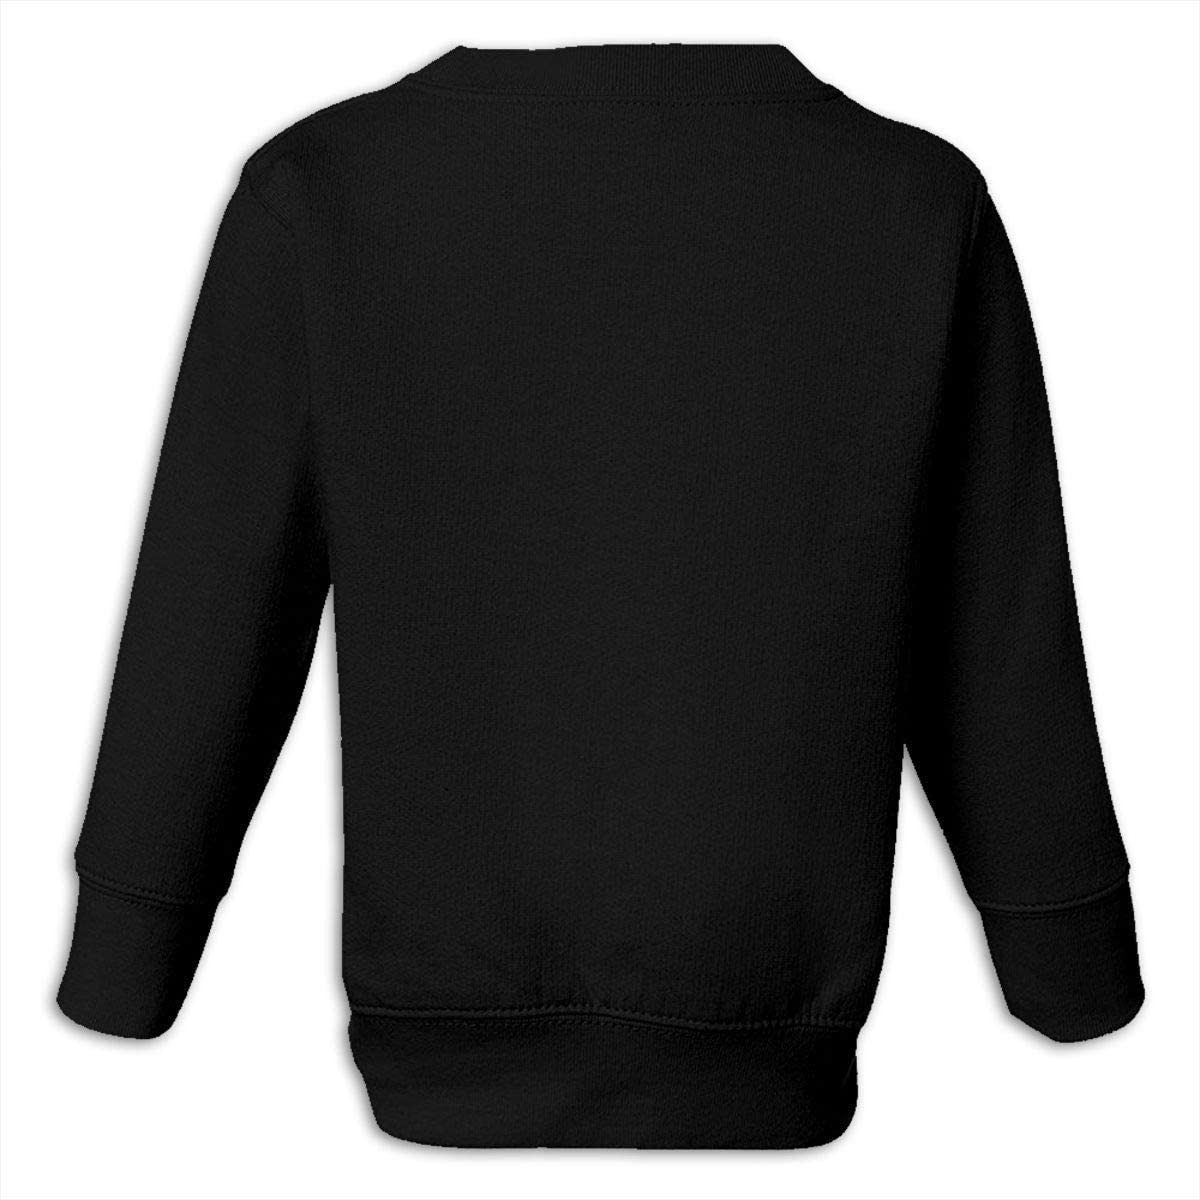 wudici Drums Boys Girls Pullover Sweaters Crewneck Sweatshirts Clothes for 2-6 Years Old Children